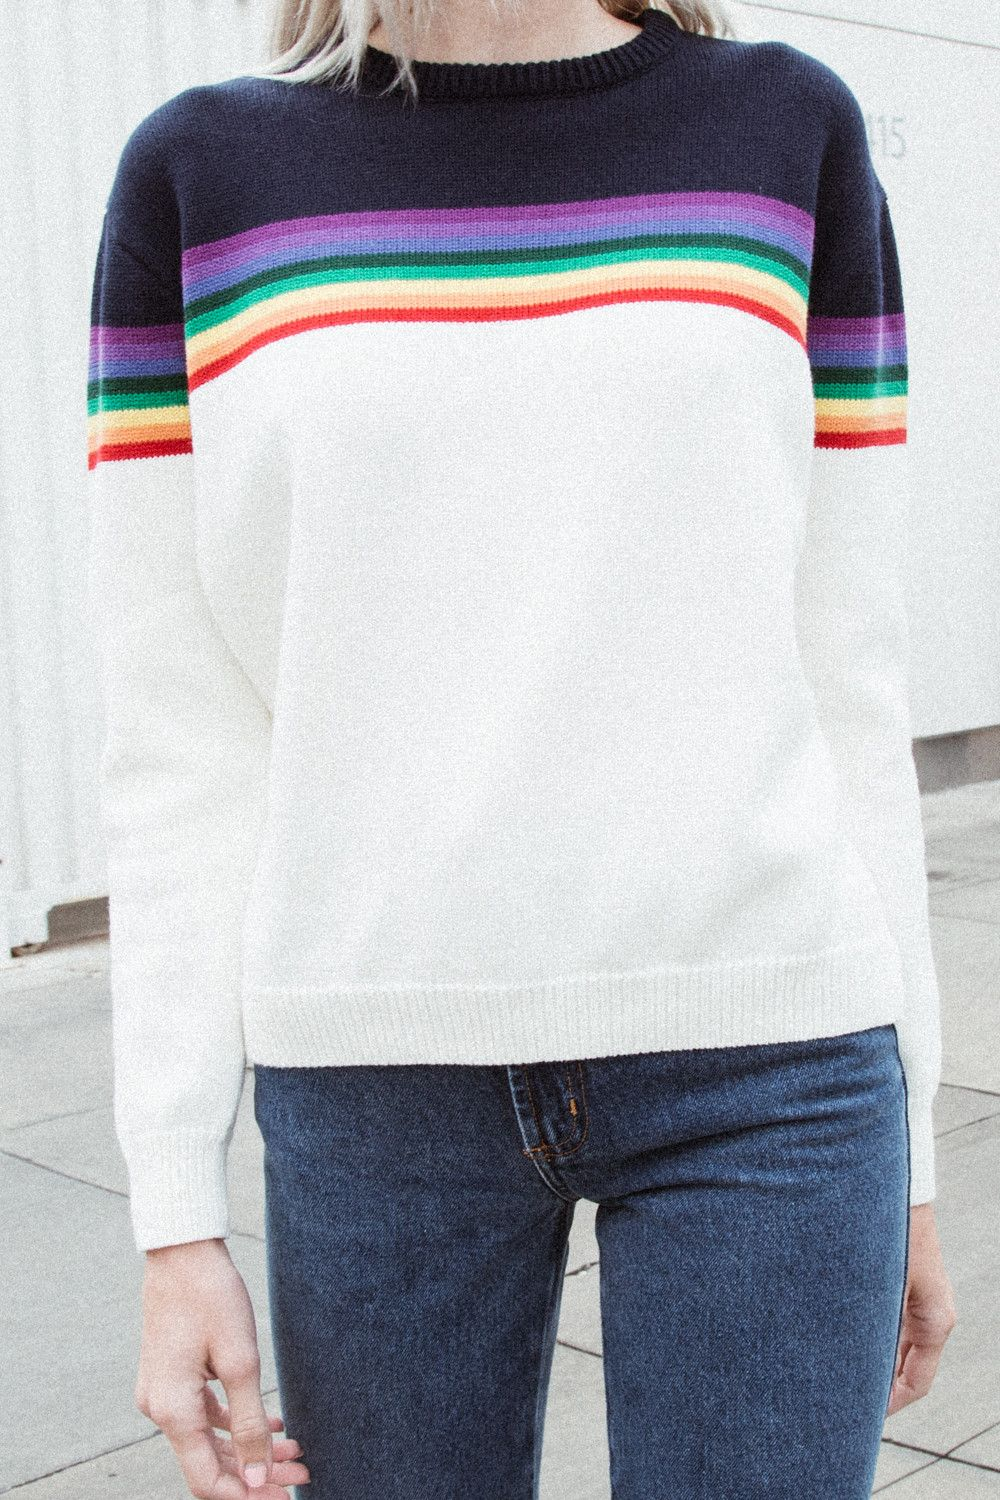 Bronx Rainbow Sweater - Pullovers - Sweaters - Clothing  be76ca748